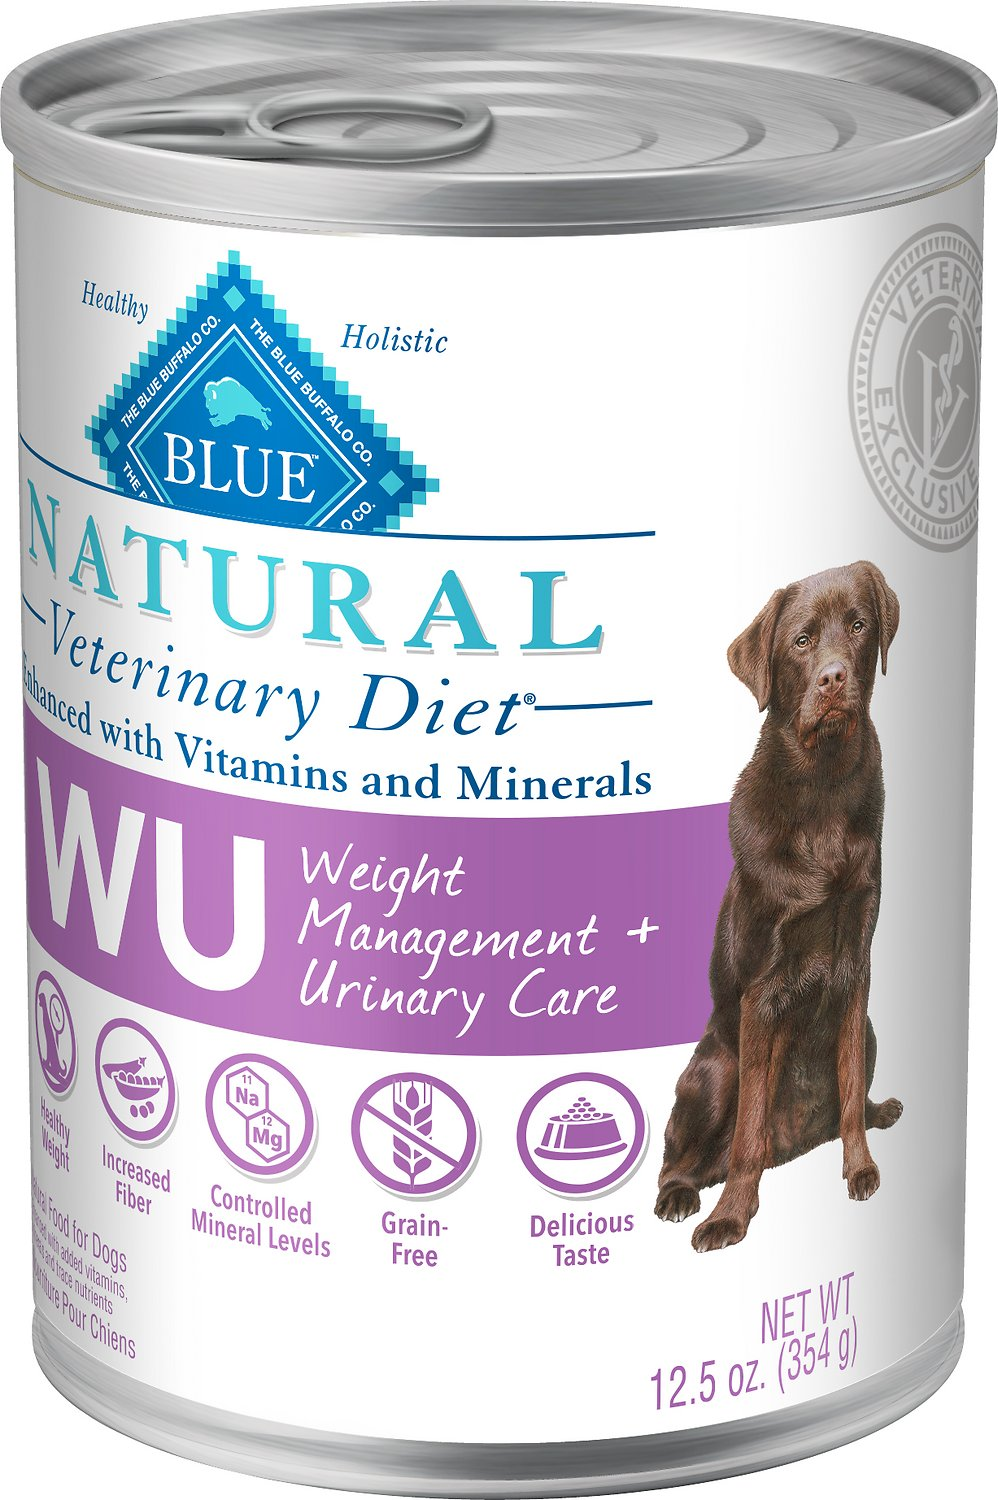 Blue Buffalo Natural Veterinary Diet W+U Weight Management + Urinary Care Grain-Free Canned Dog Food, 12.5-oz, case of 12